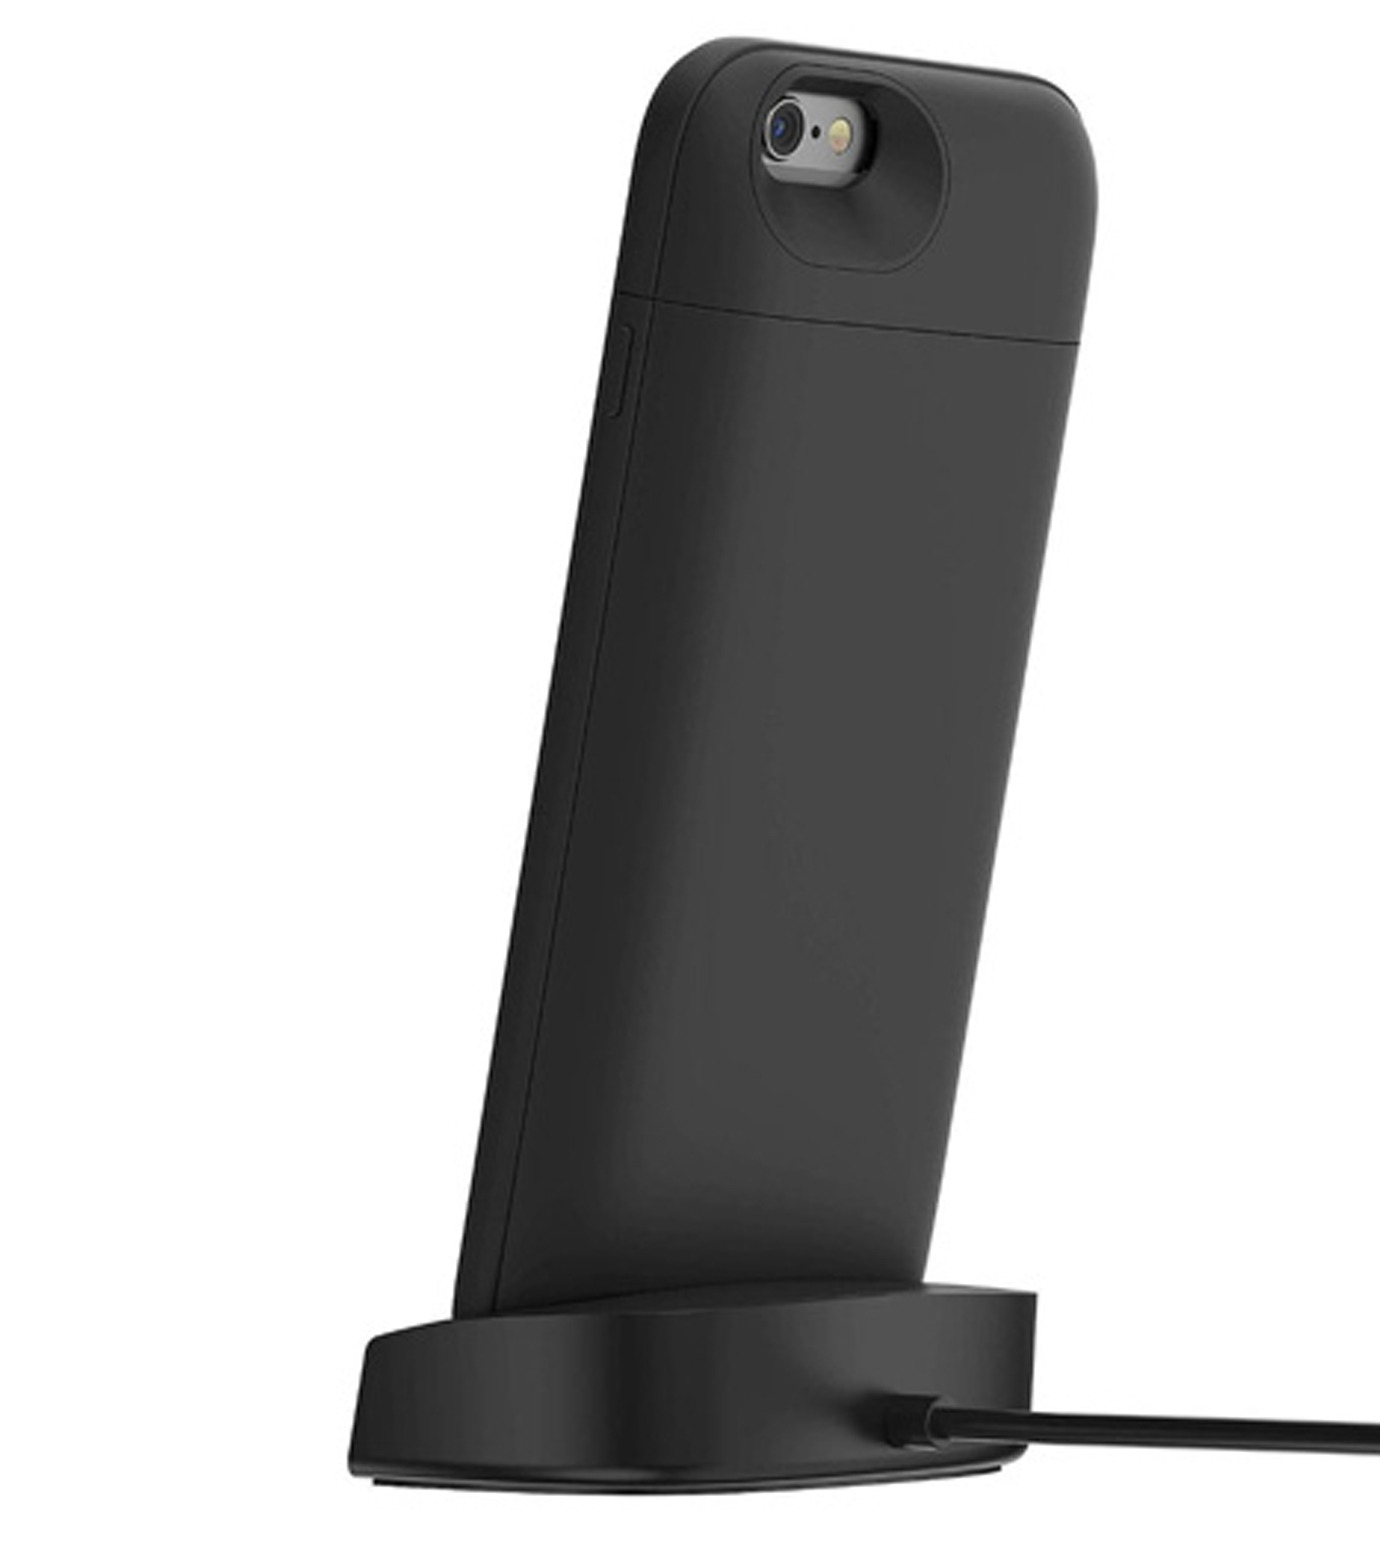 Mophie(モーフィー)のmophie juice pack dock iPhone 6-BLACK(ケースiphone6/6s/case iphone6/6s)-MOP-PH-106-13 拡大詳細画像2